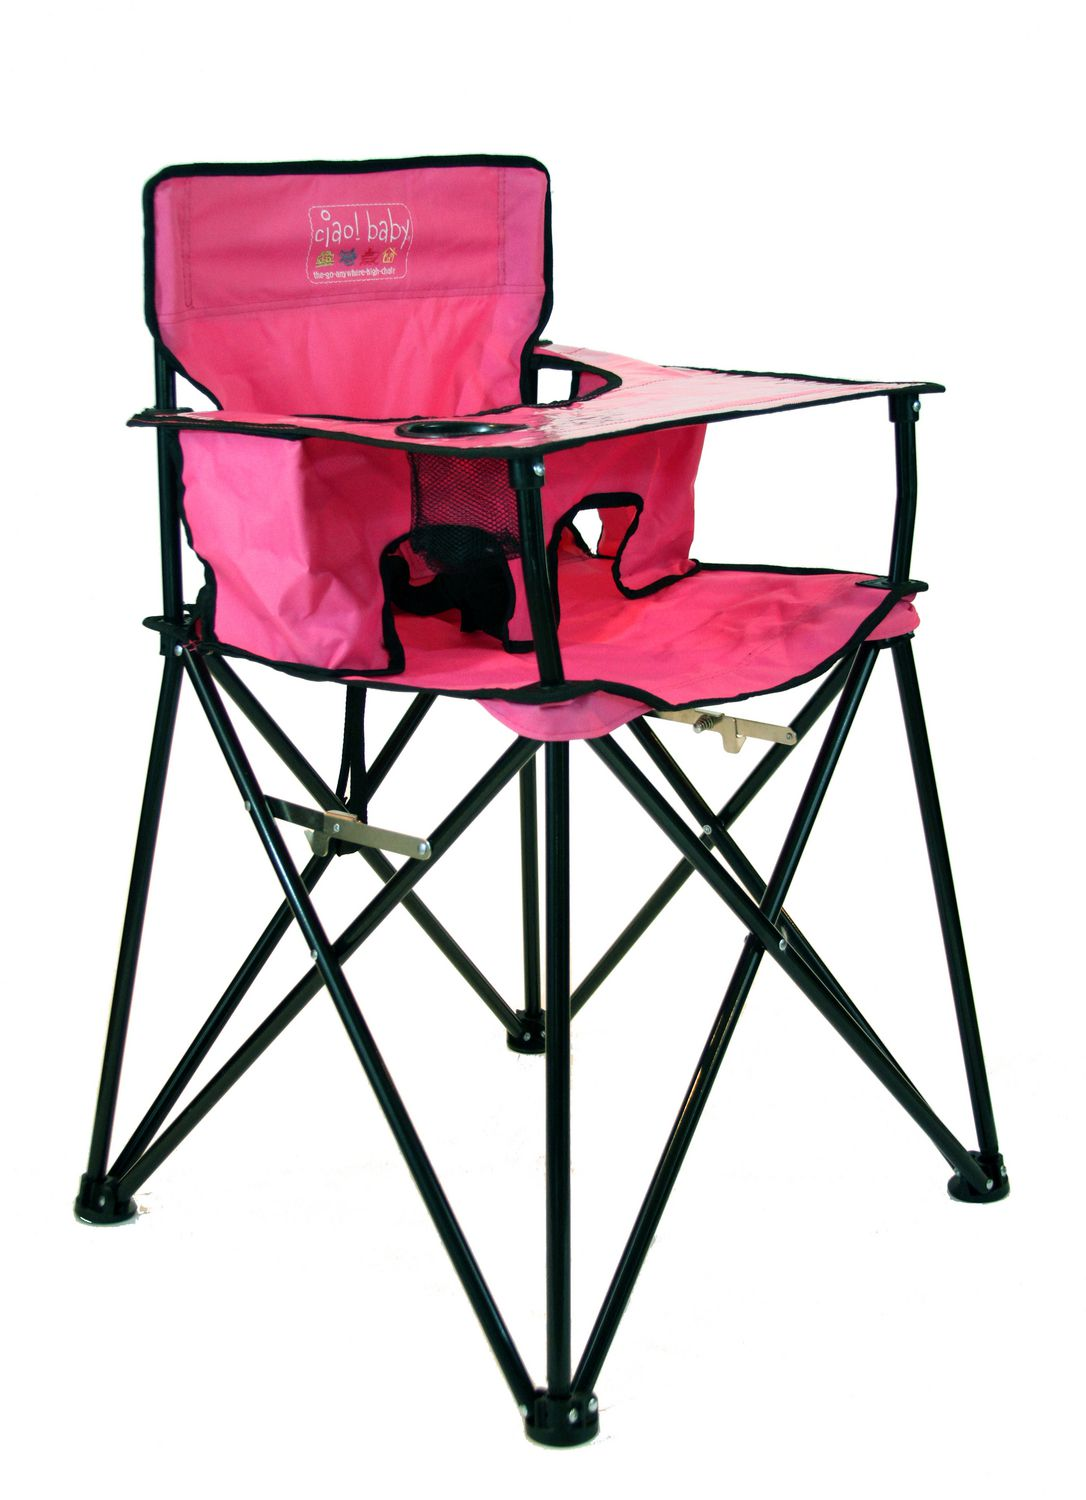 3cb1323f12a Ciao Baby Portable High Chair